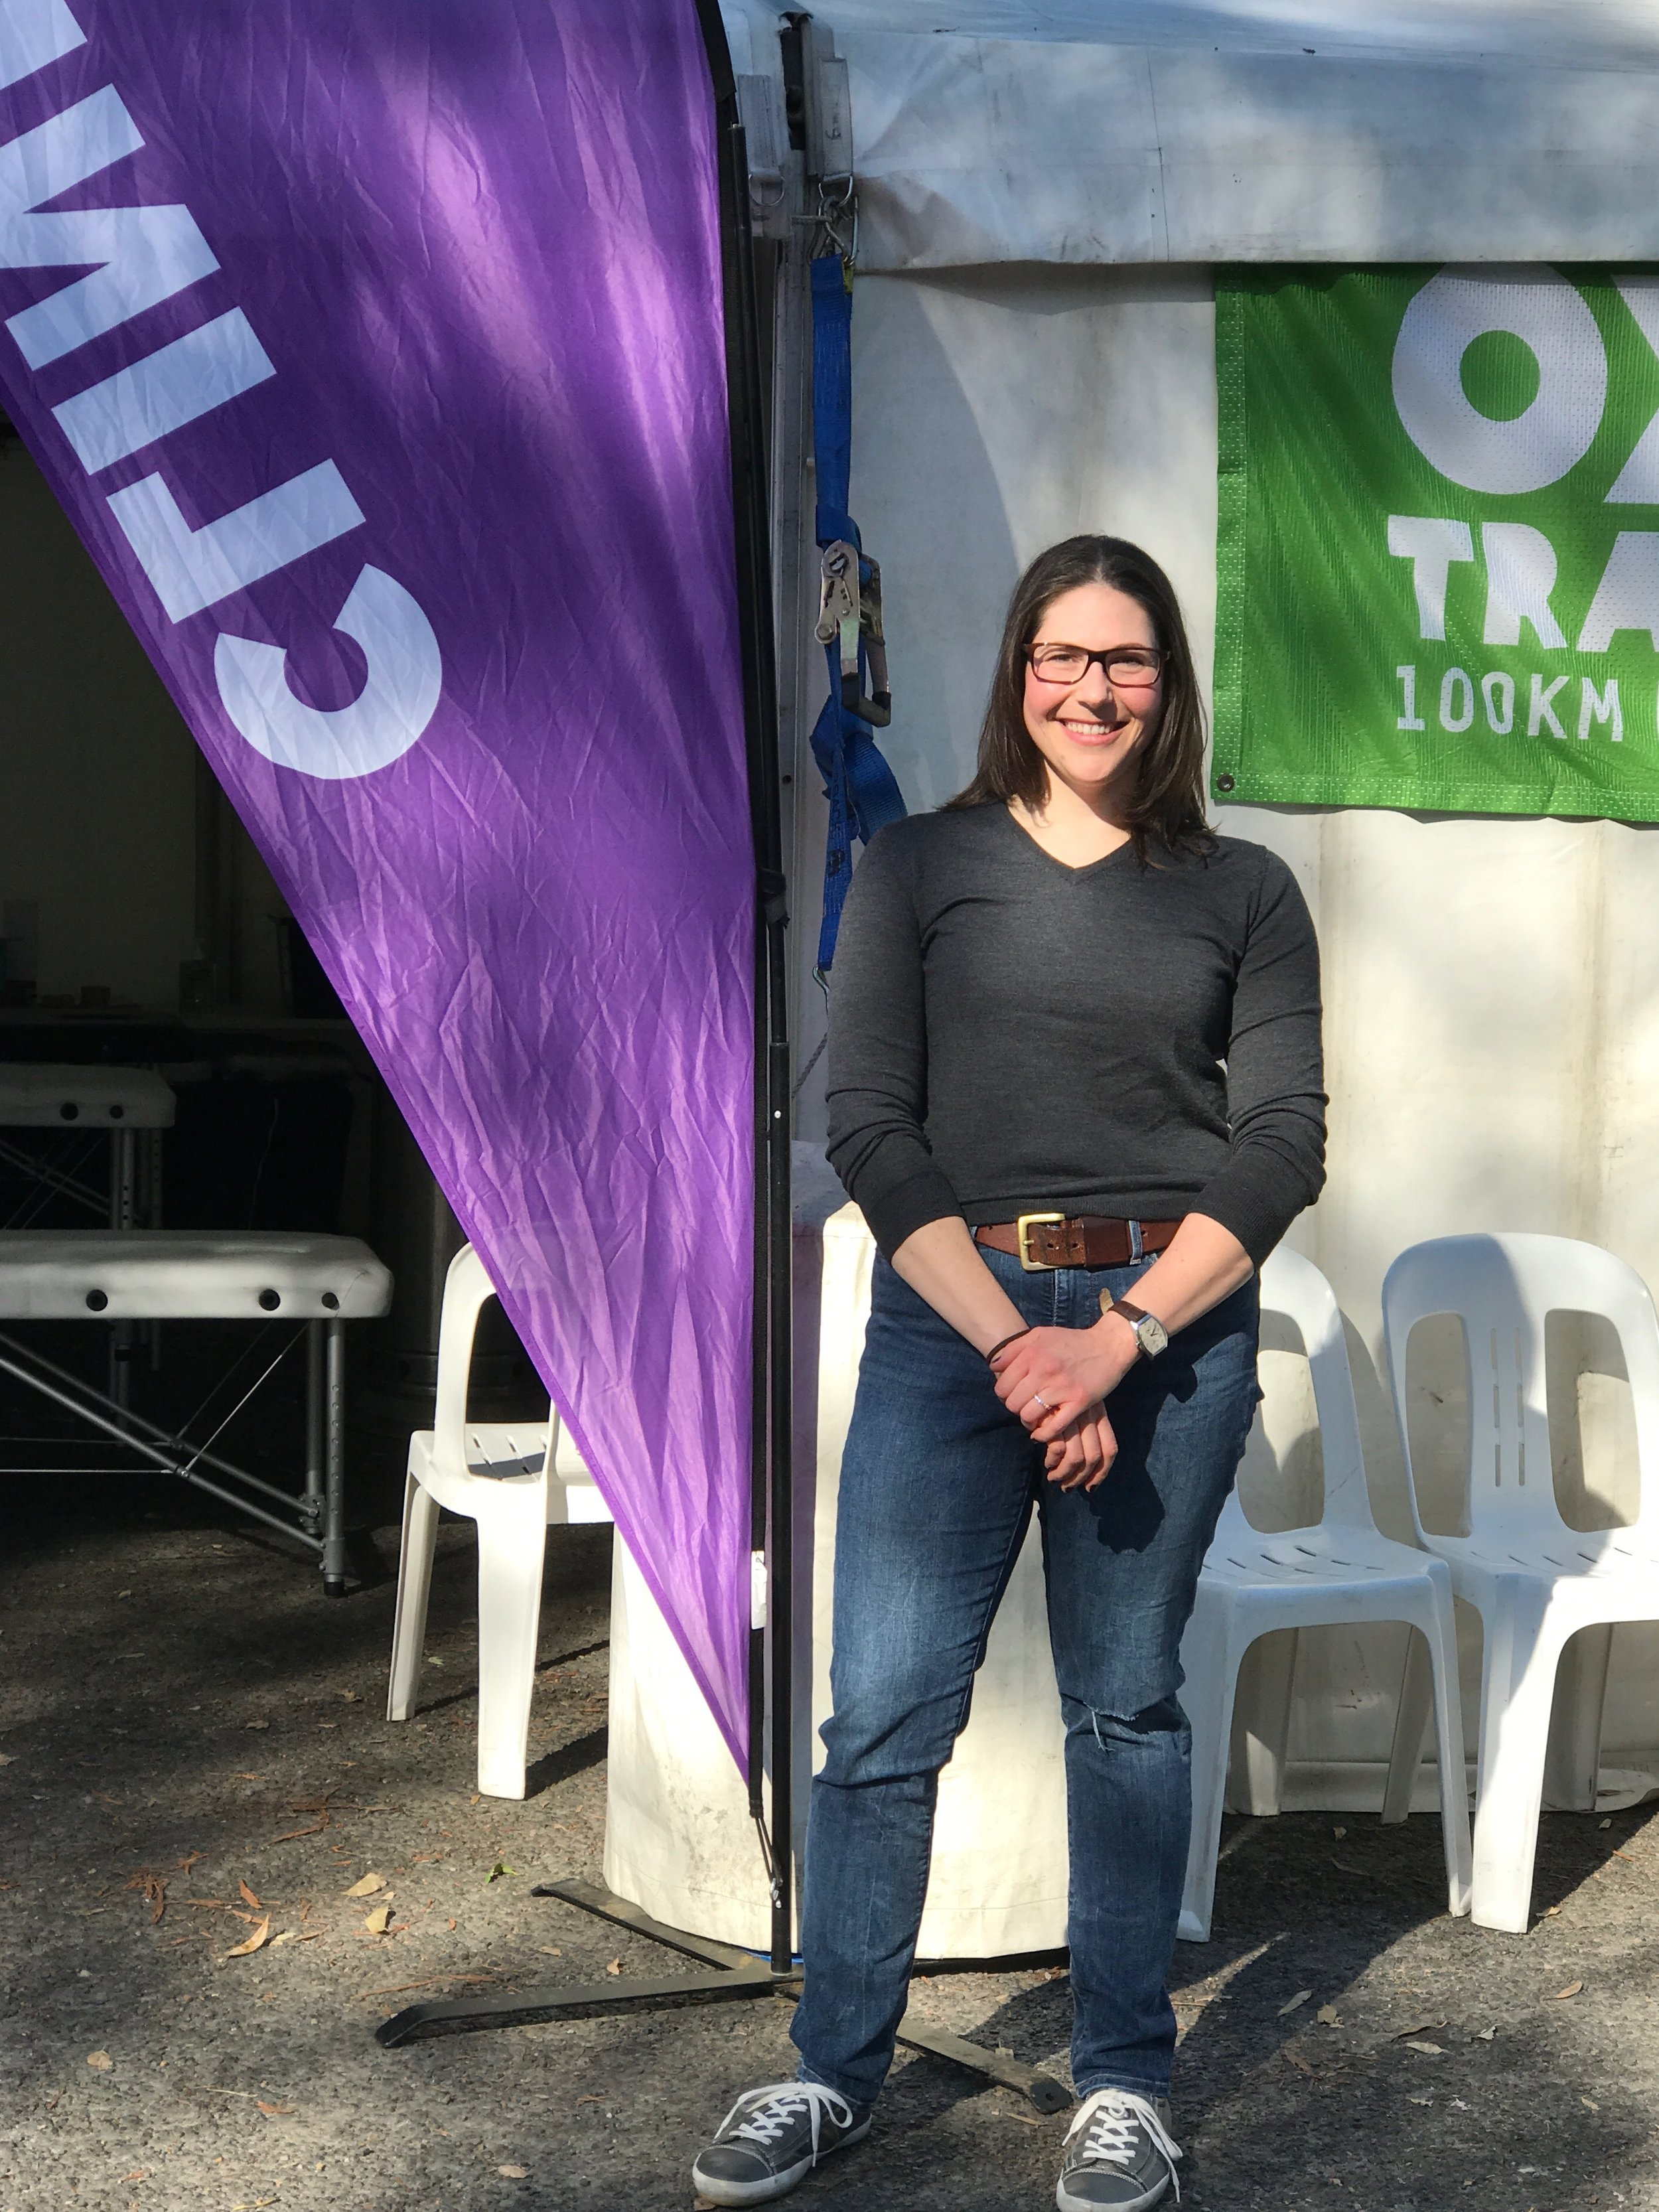 Marissa is volunteering at the 2017 Oxfam Trailwalker. We want to wish all the walkers the best of luck and to stay injury free!